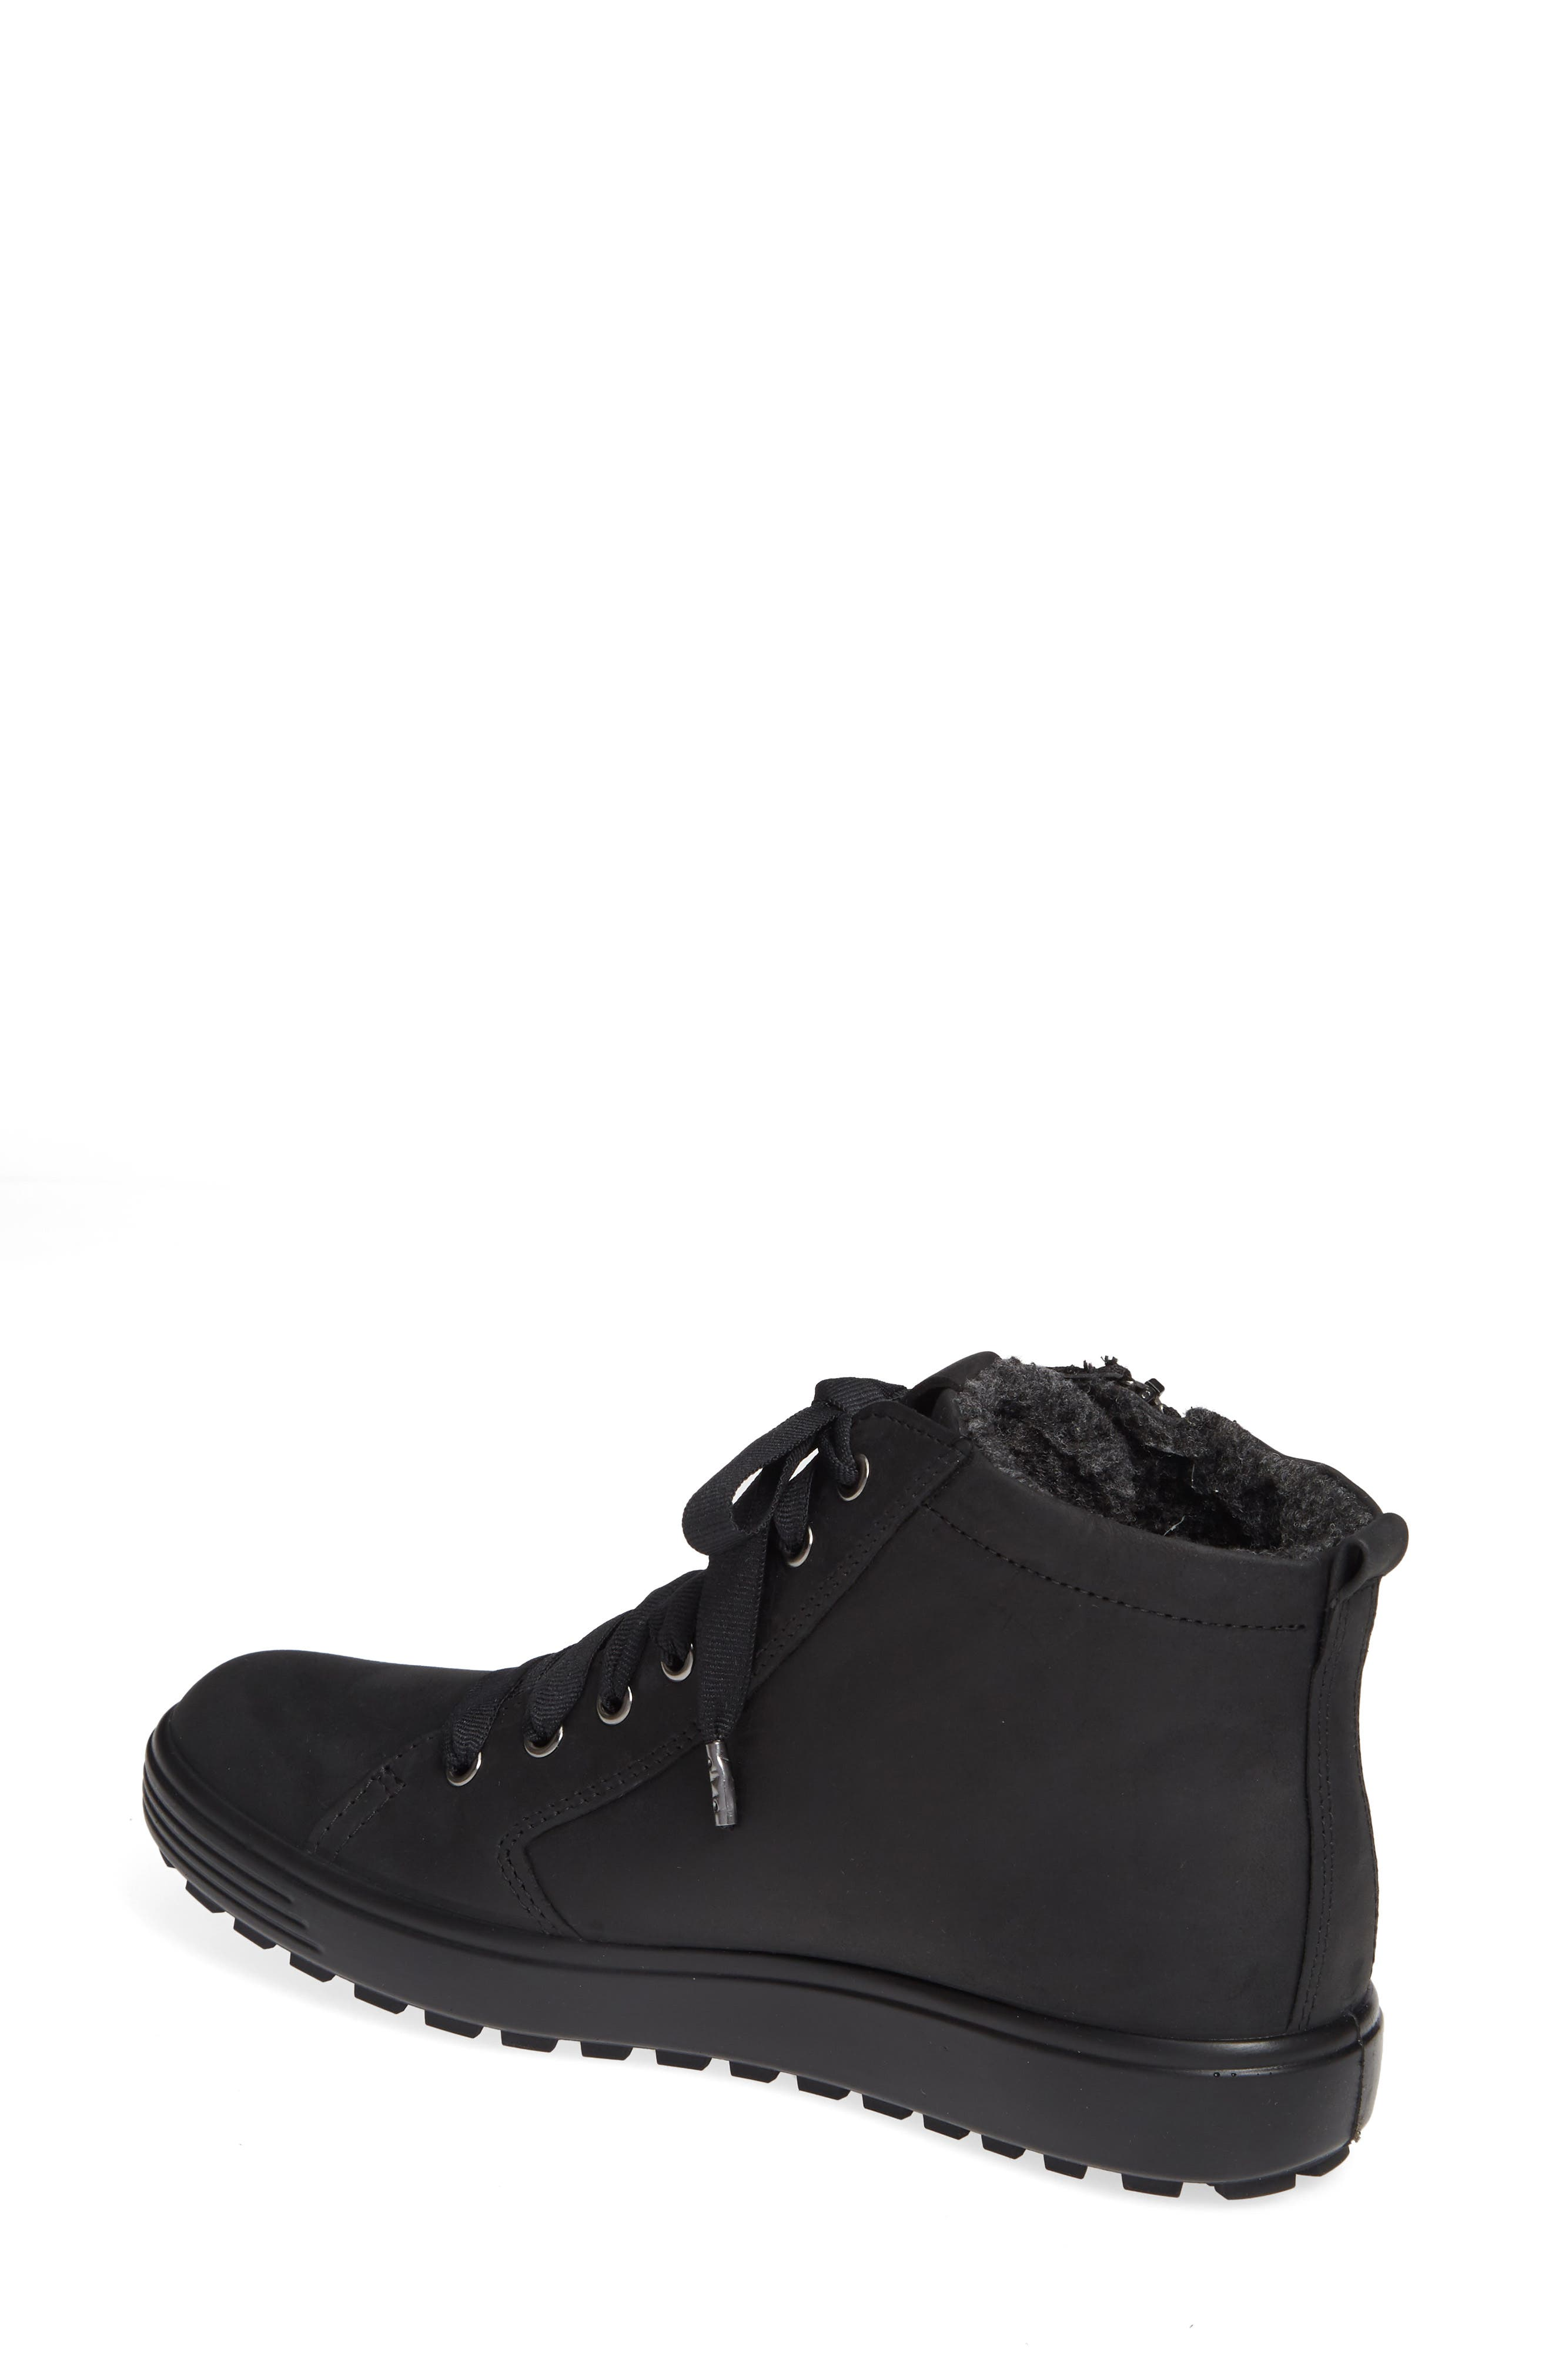 ECCO,                             Soft 7 Tred Gore-Tex<sup>®</sup> Waterproof Bootie,                             Alternate thumbnail 2, color,                             BLACK OIL NUBUCK LEATHER